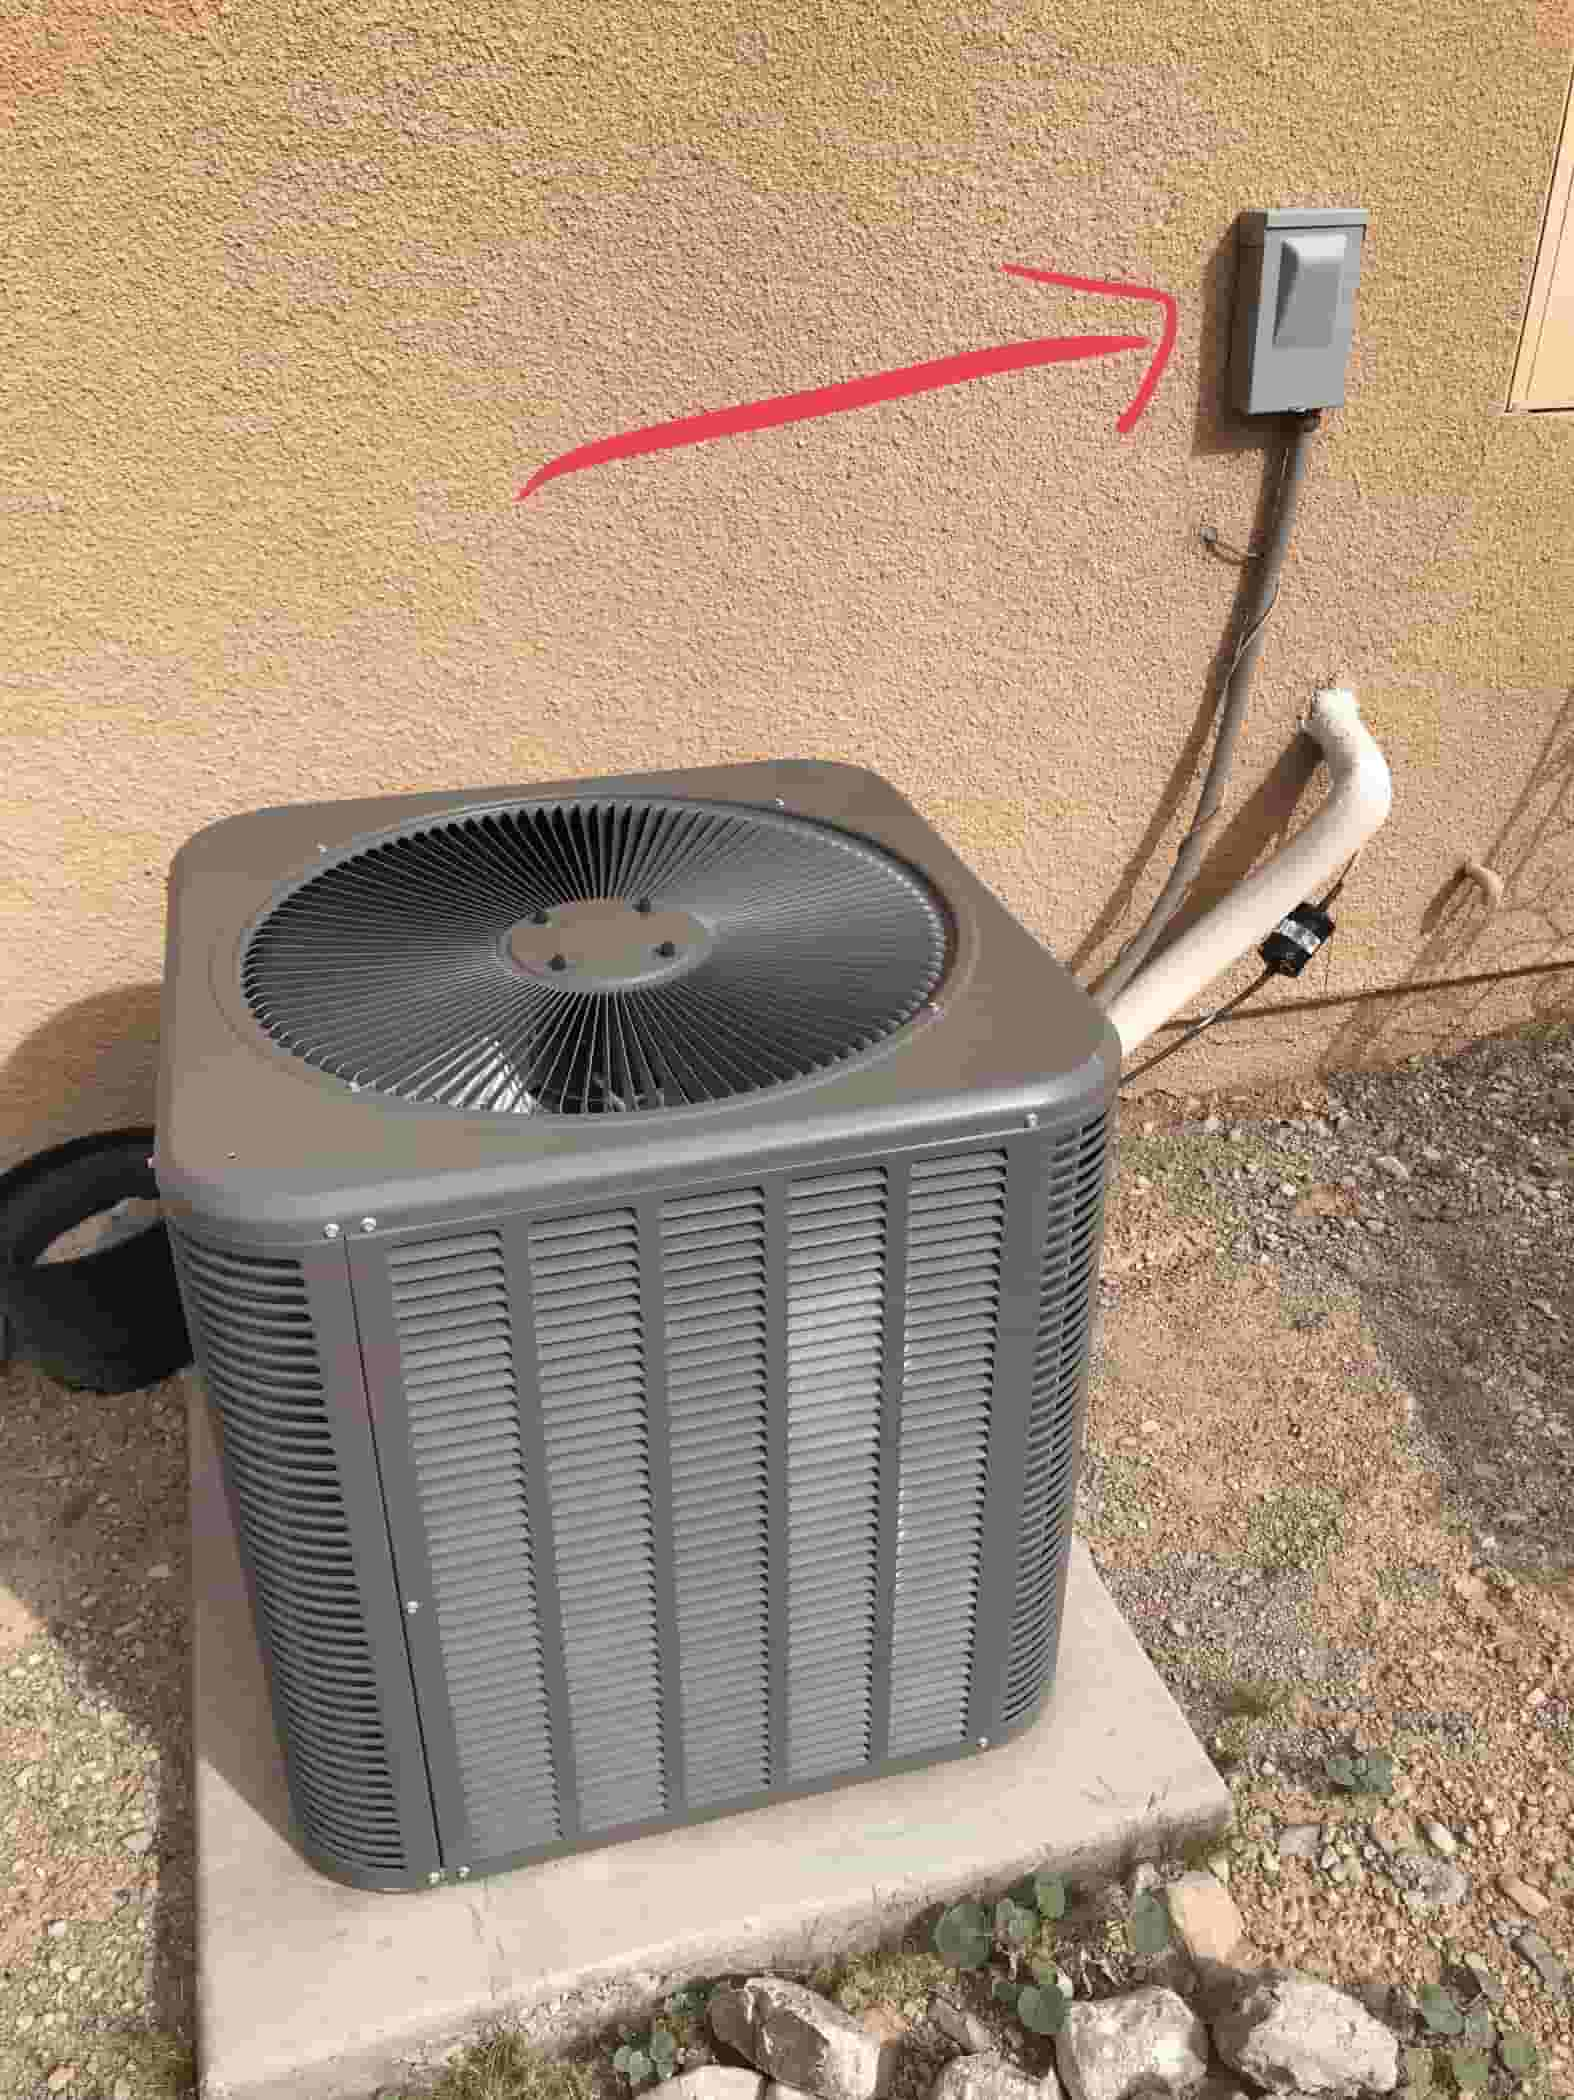 Circuit breaker next to air conditioning condenser unit to cut when installing a Hard Start Kit